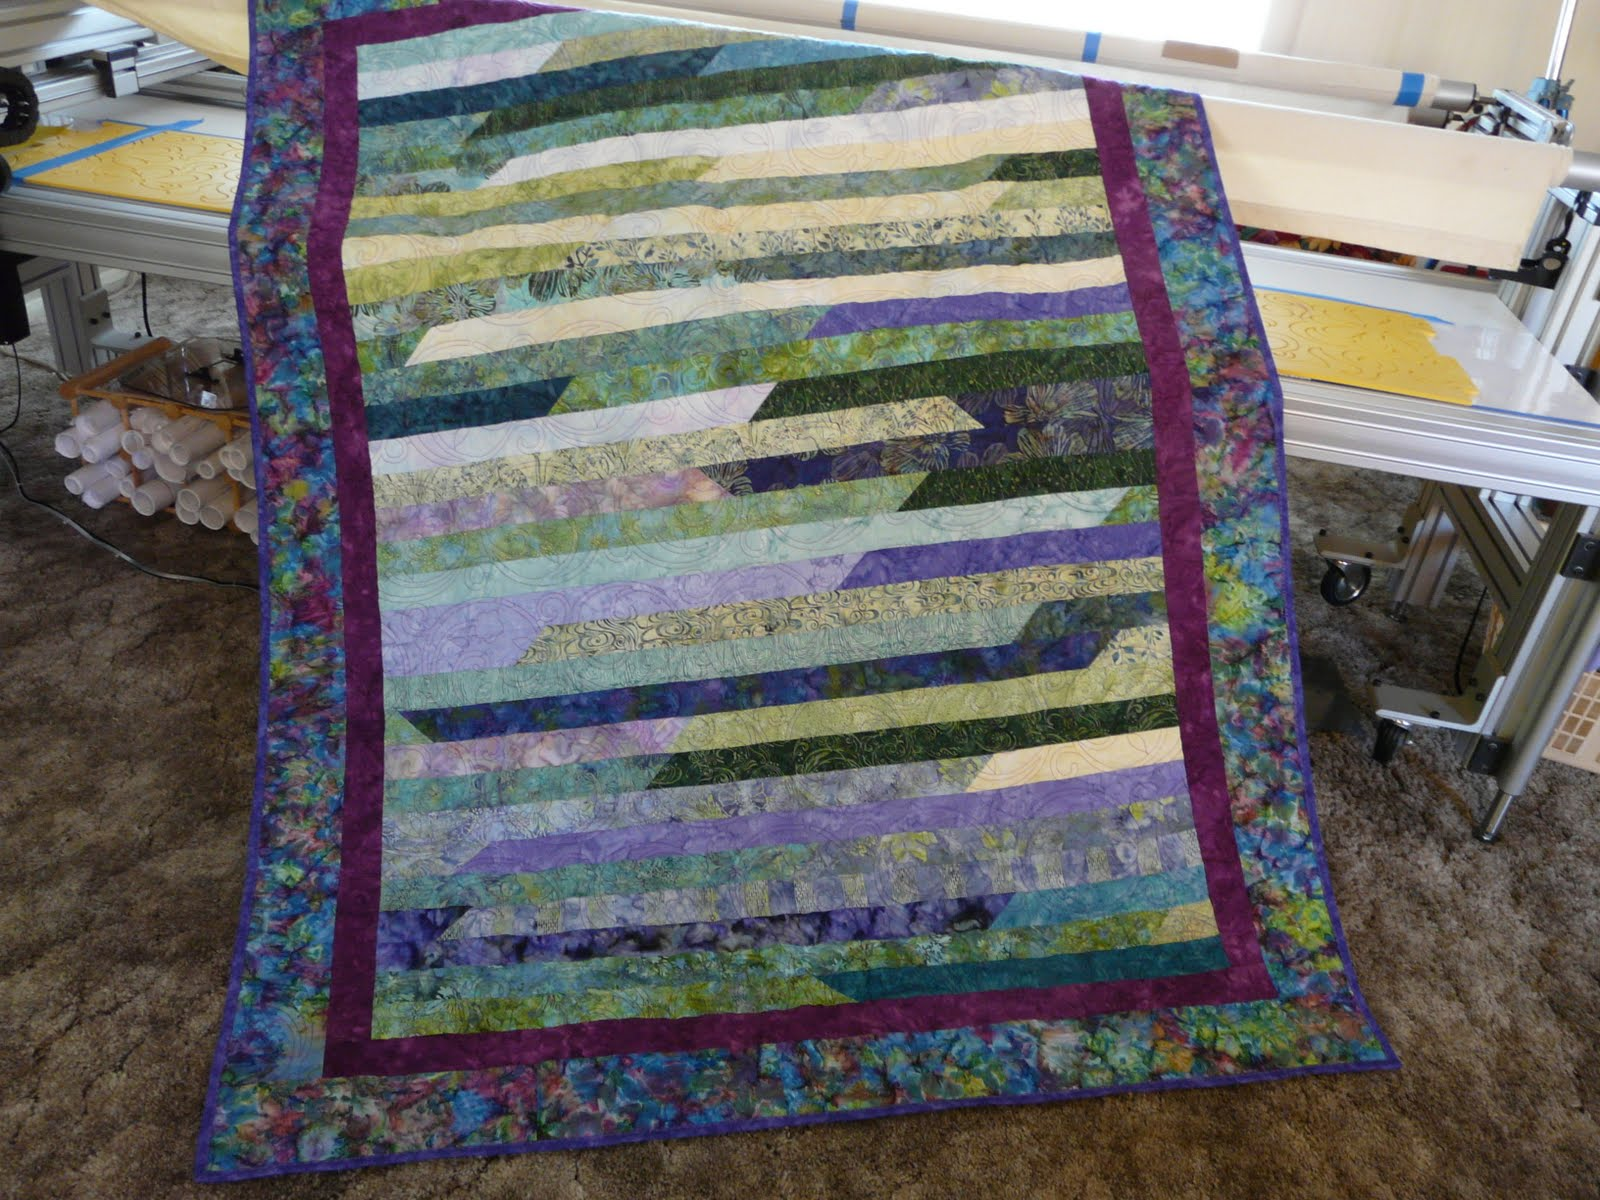 Timber Hill Threads: Jelly Roll Race Quilts : batik jelly roll quilt - Adamdwight.com